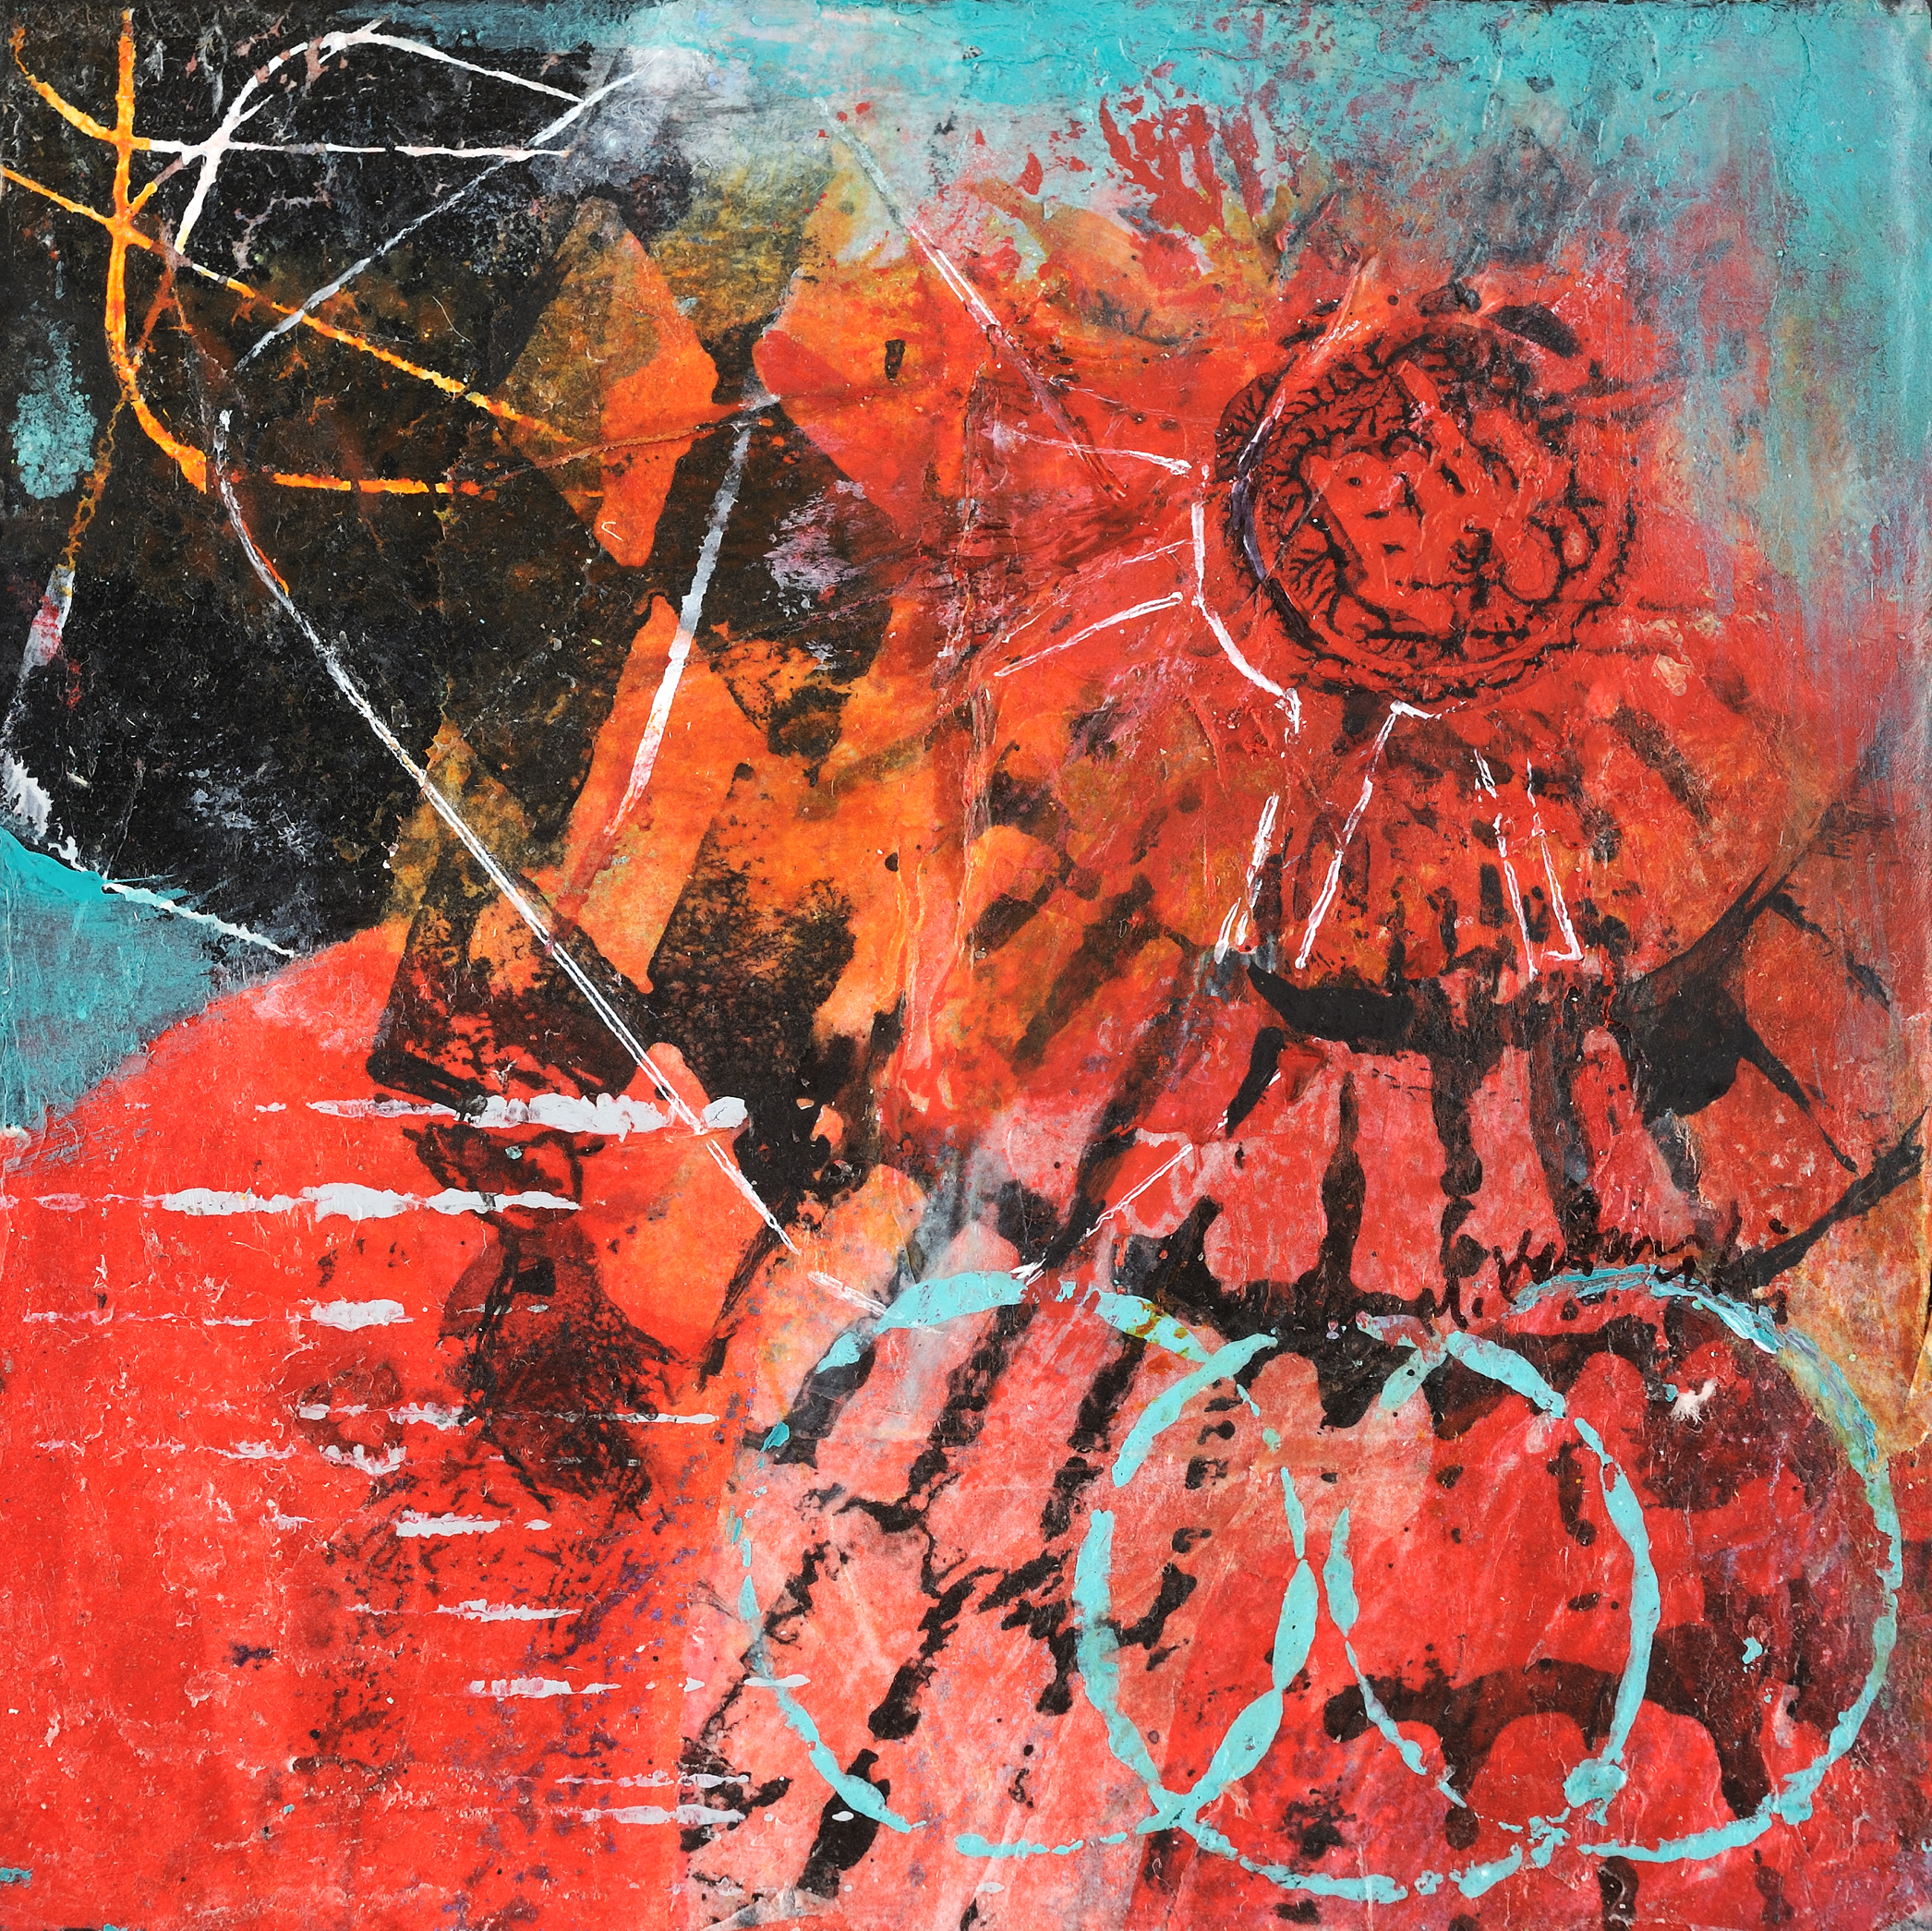 art spots abstract red-teal 3 of 4.jpg